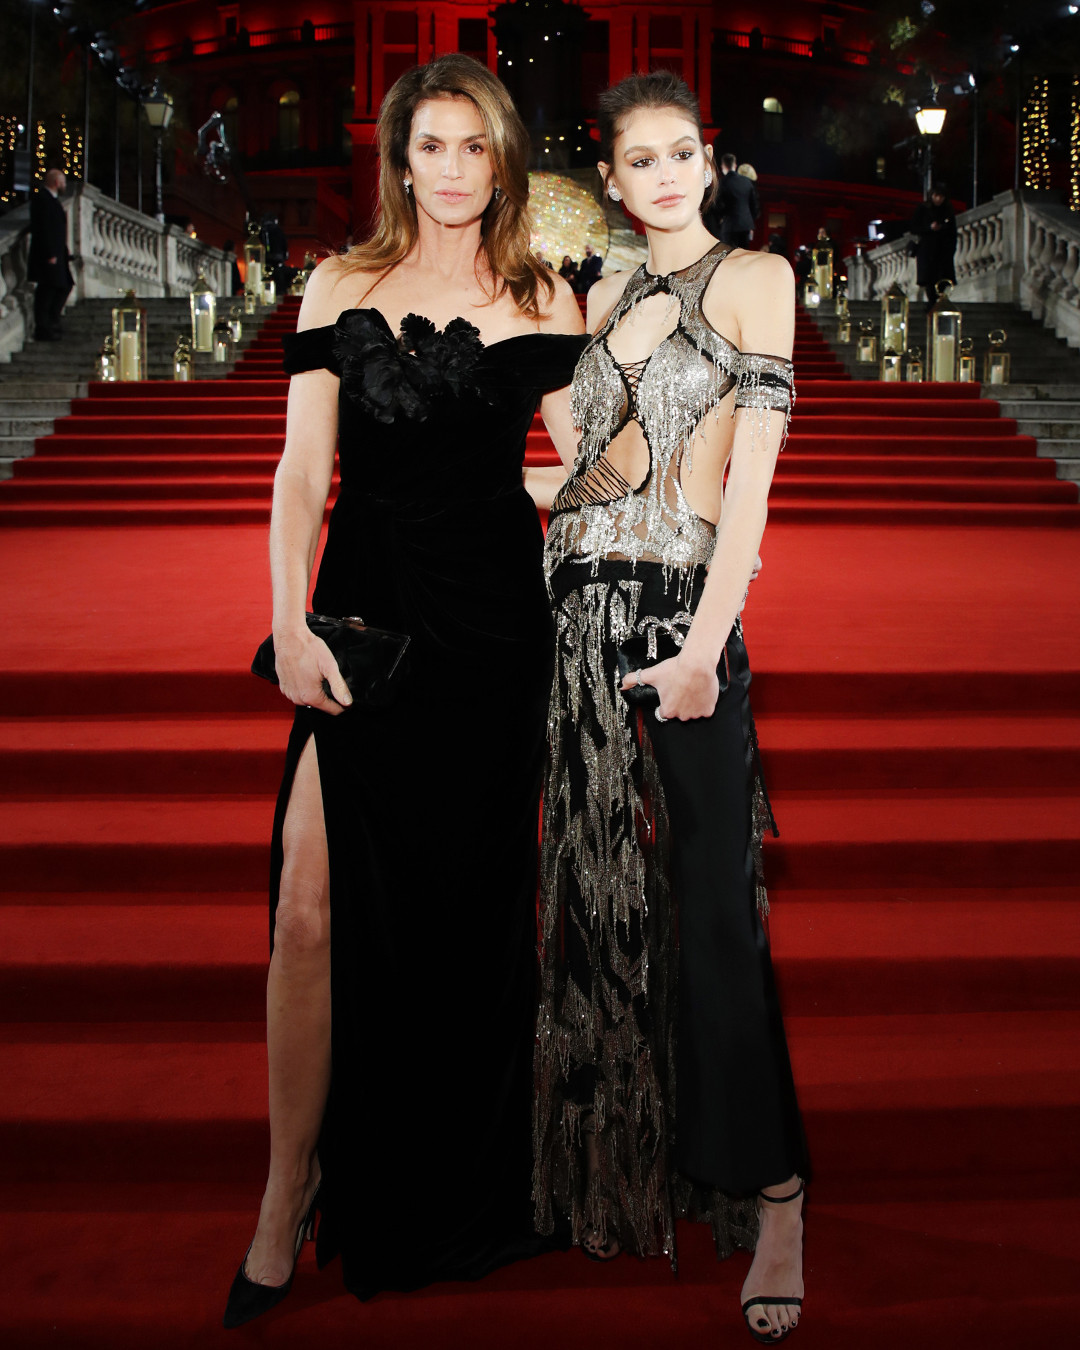 Kaia Gerber and Cindy Crawford Are Mother-Daughter Goals at the British Fashion Awards 2018